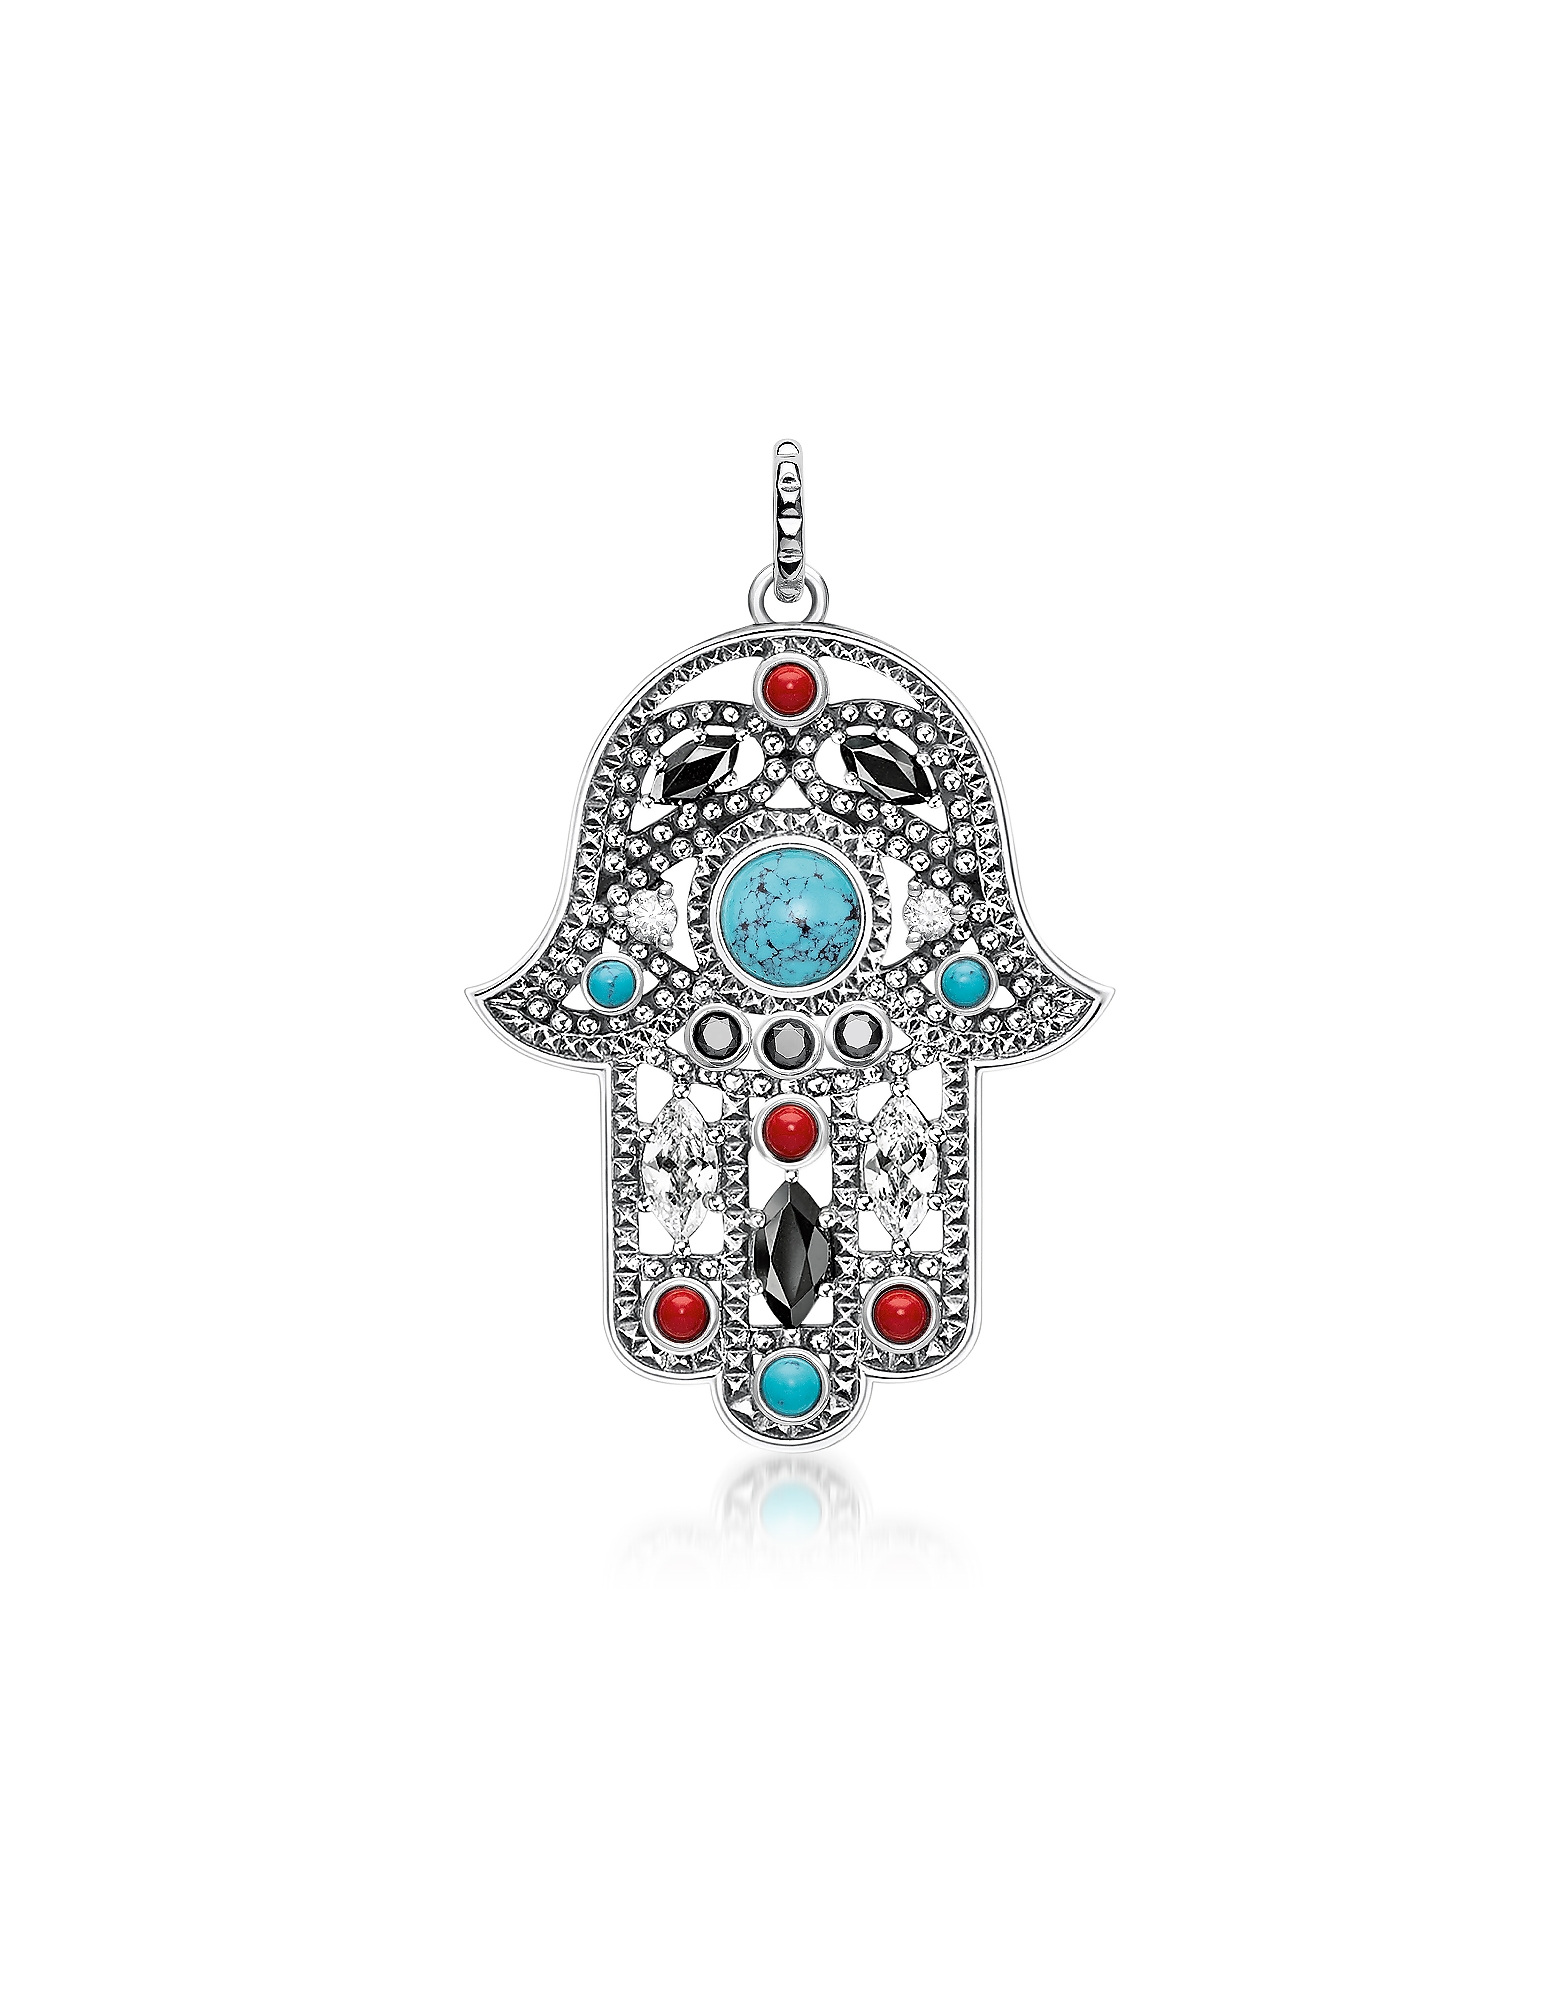 Thomas Sabo Necklaces, Blackened Sterling Silver Hand of Fatima Pendant w/Turquoise and Zirconia